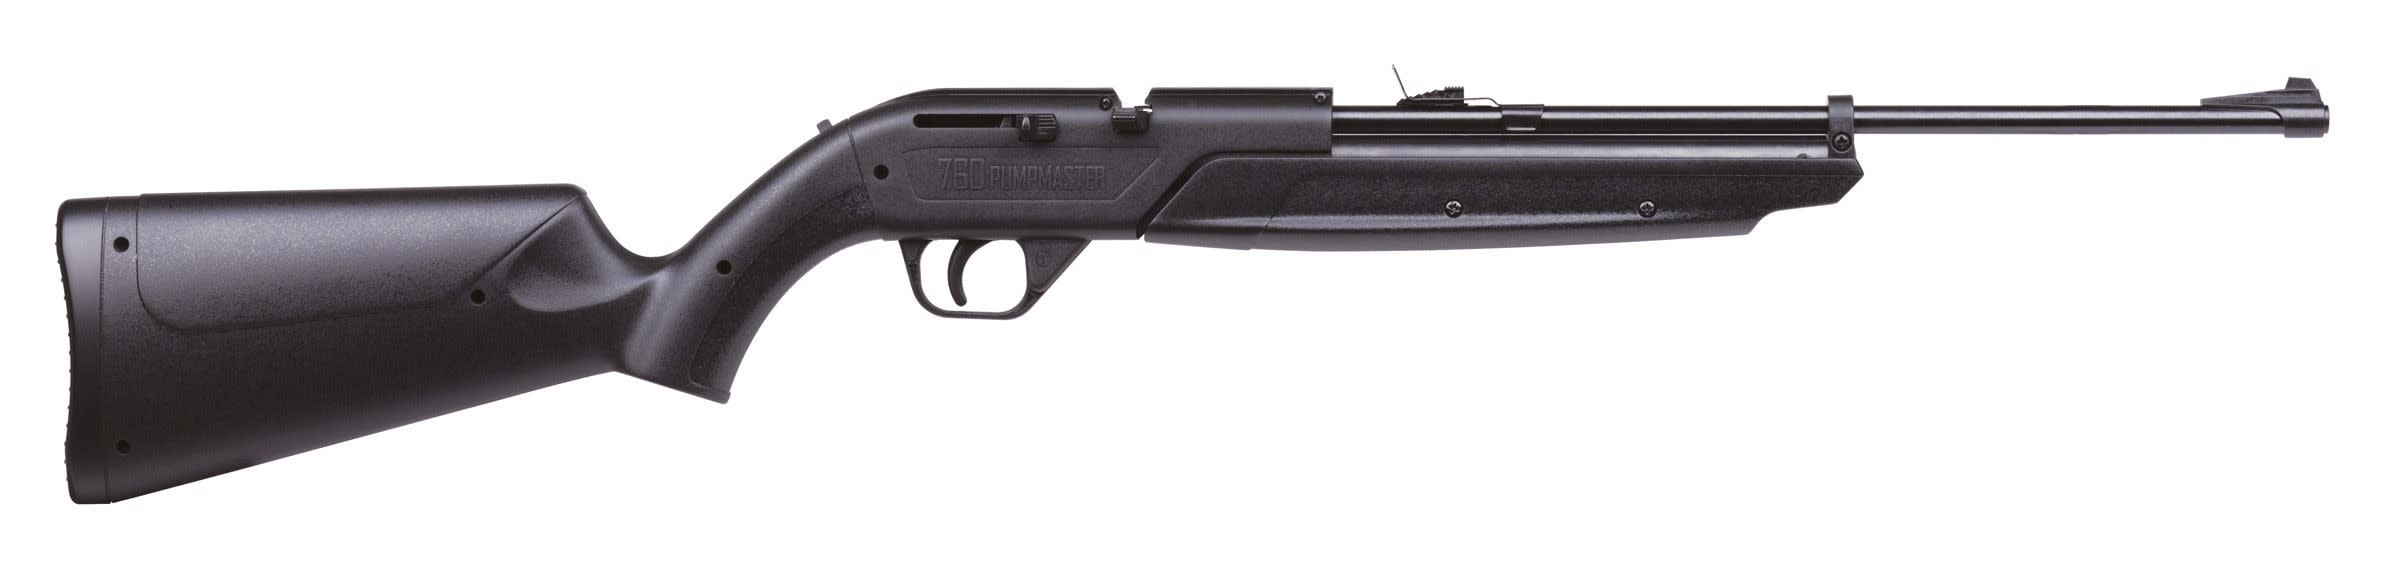 Crosman 760 Air Rifle Multi-Pump Pneumatic Bolt Action .177 Pellet/BB